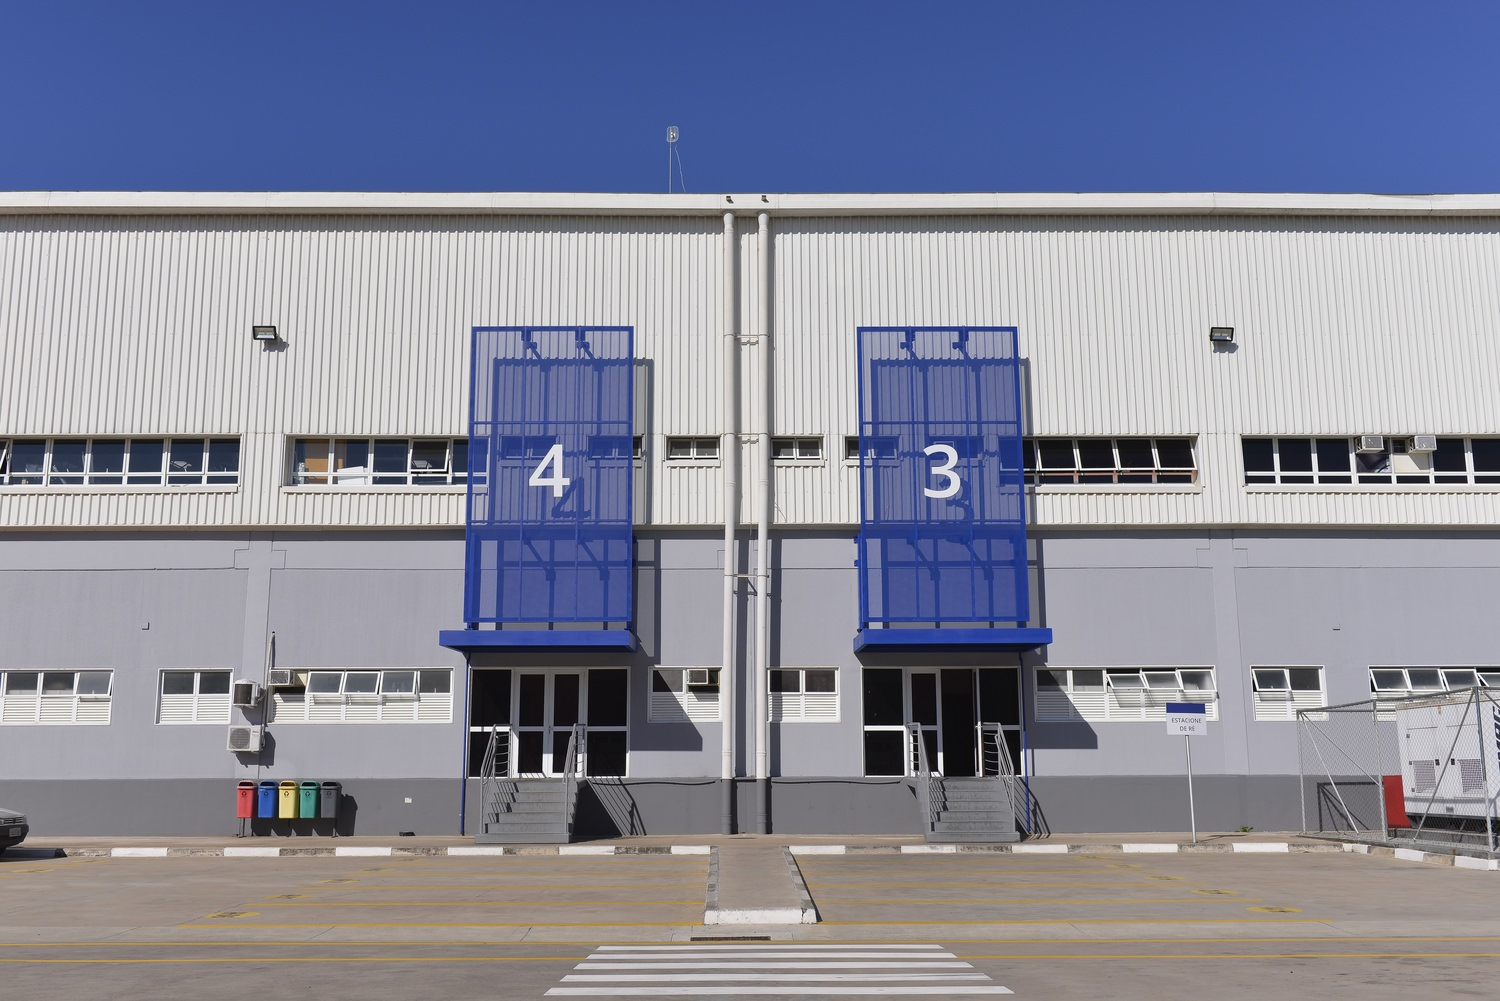 Entrances 4 and 3 to the building.